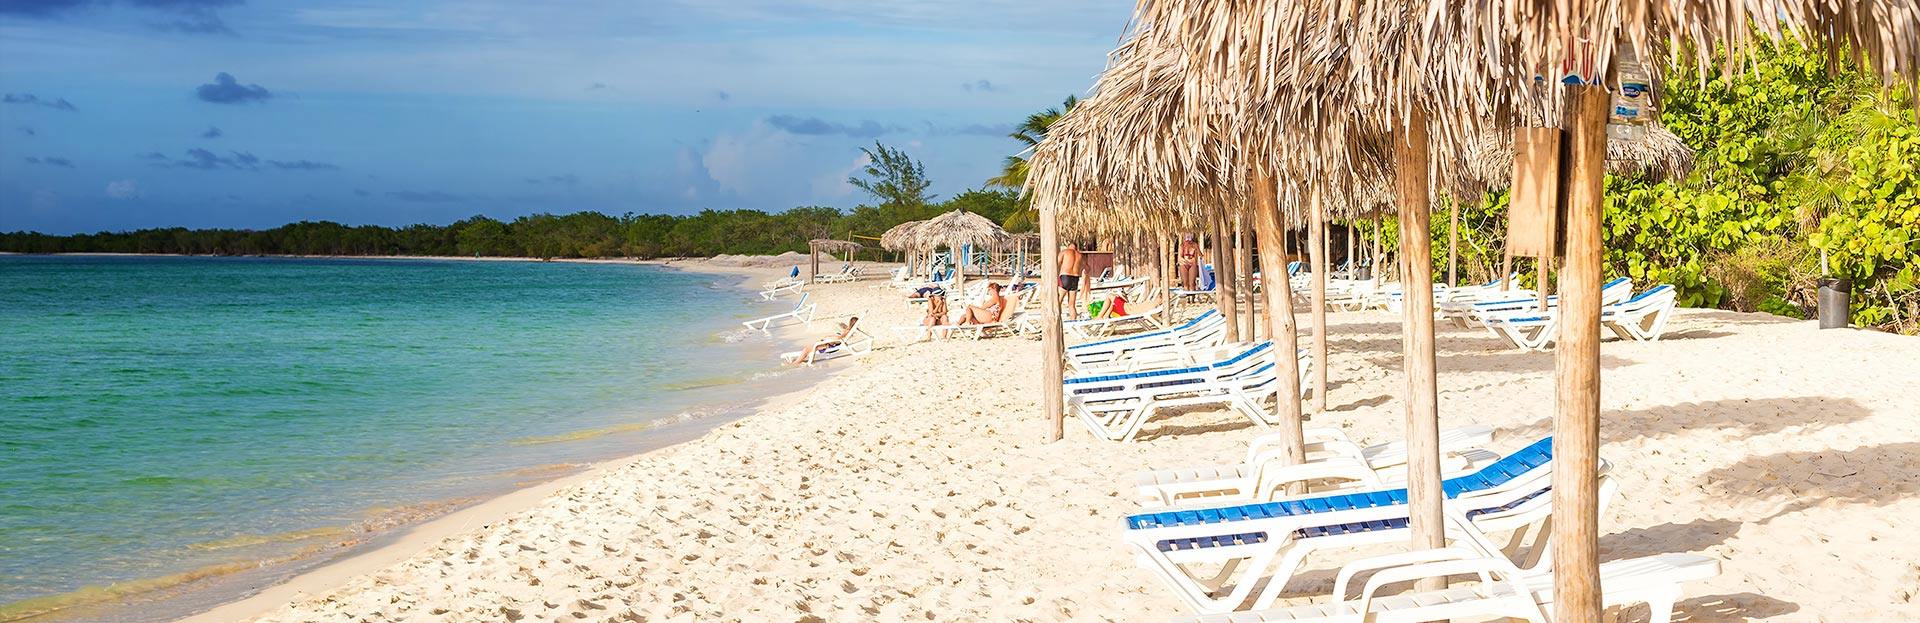 Cayo Coco Vacations Packages From Canada Tripcentral Ca